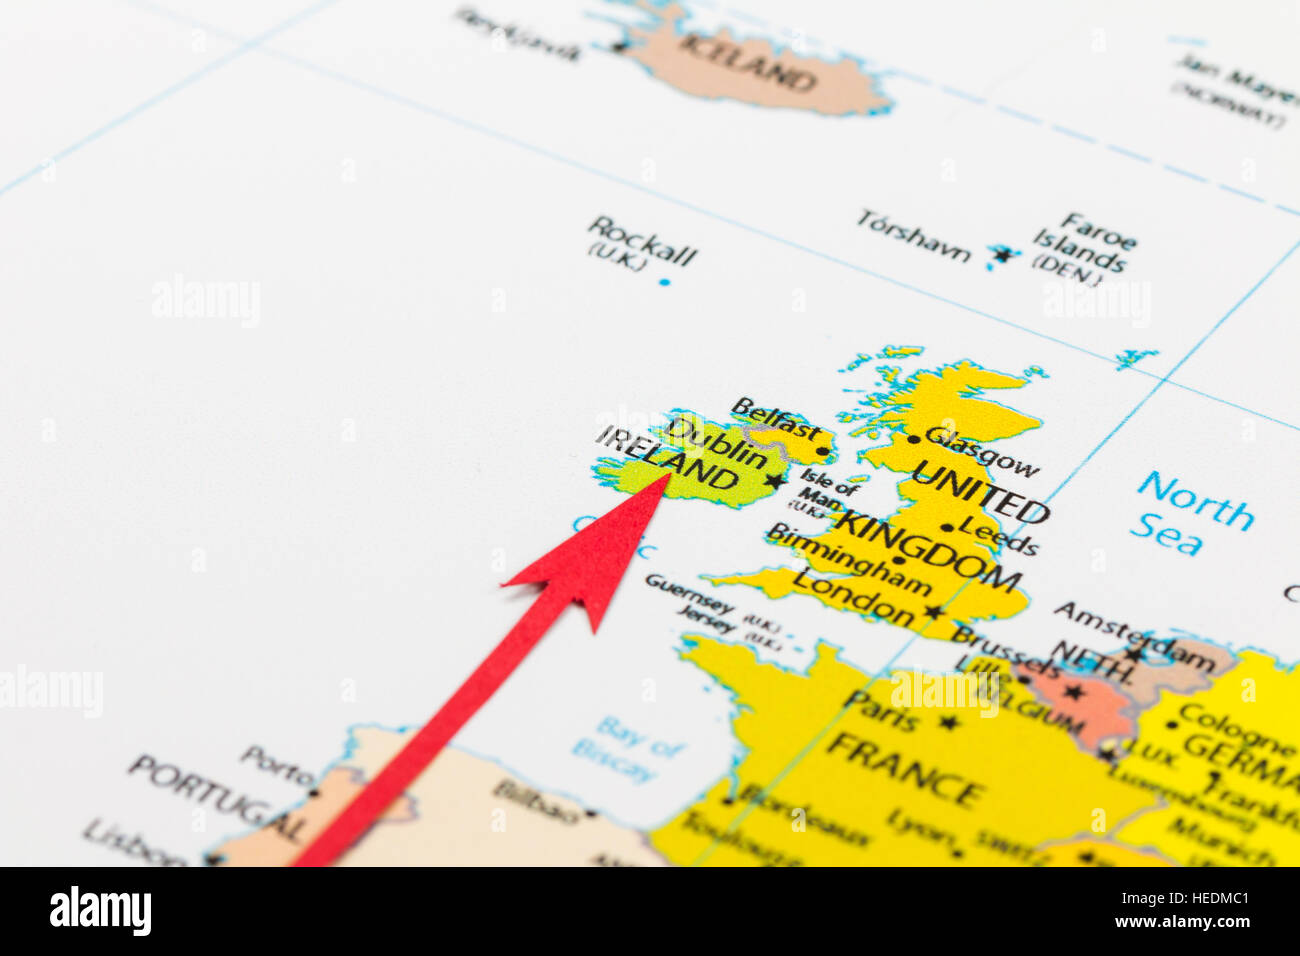 Red arrow pointing ireland on the map of europe continent stock red arrow pointing ireland on the map of europe continent gumiabroncs Image collections